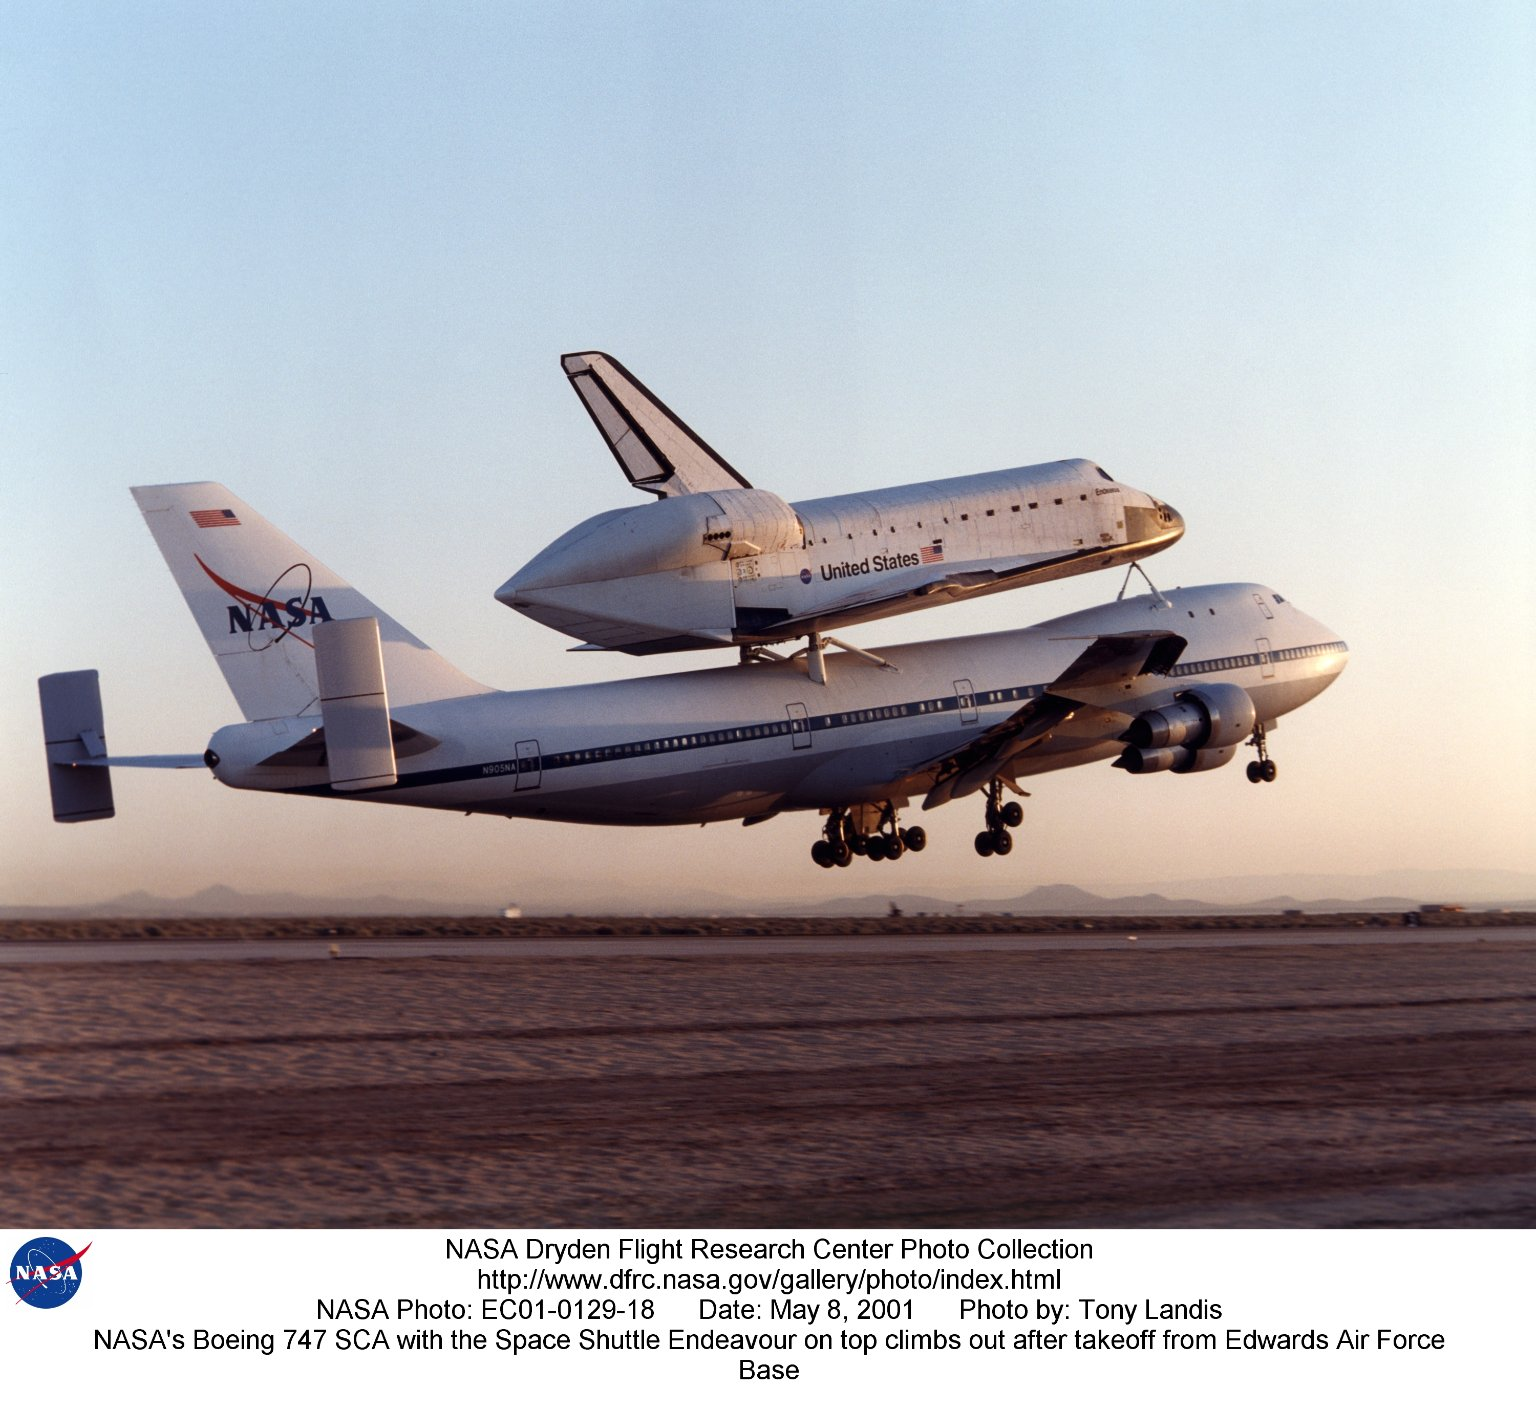 NASA's Boeing 747 SCA with the Space Shuttle Endeavour on top climbs out after takeoff from Edwards